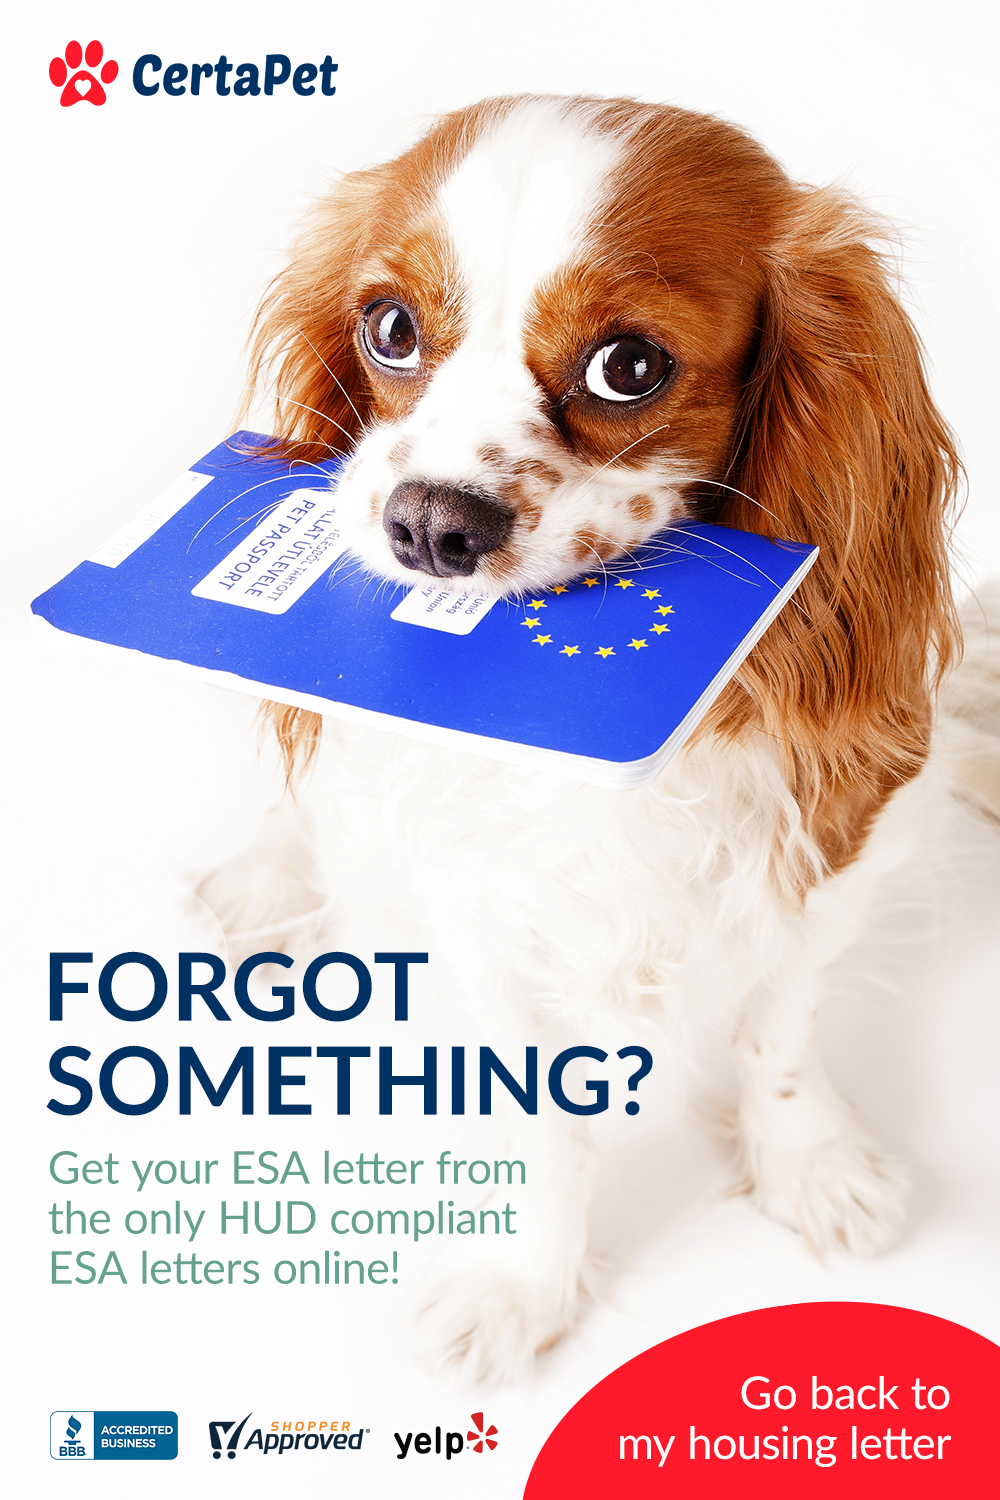 Back! Claim your ESA Housing Letter Today